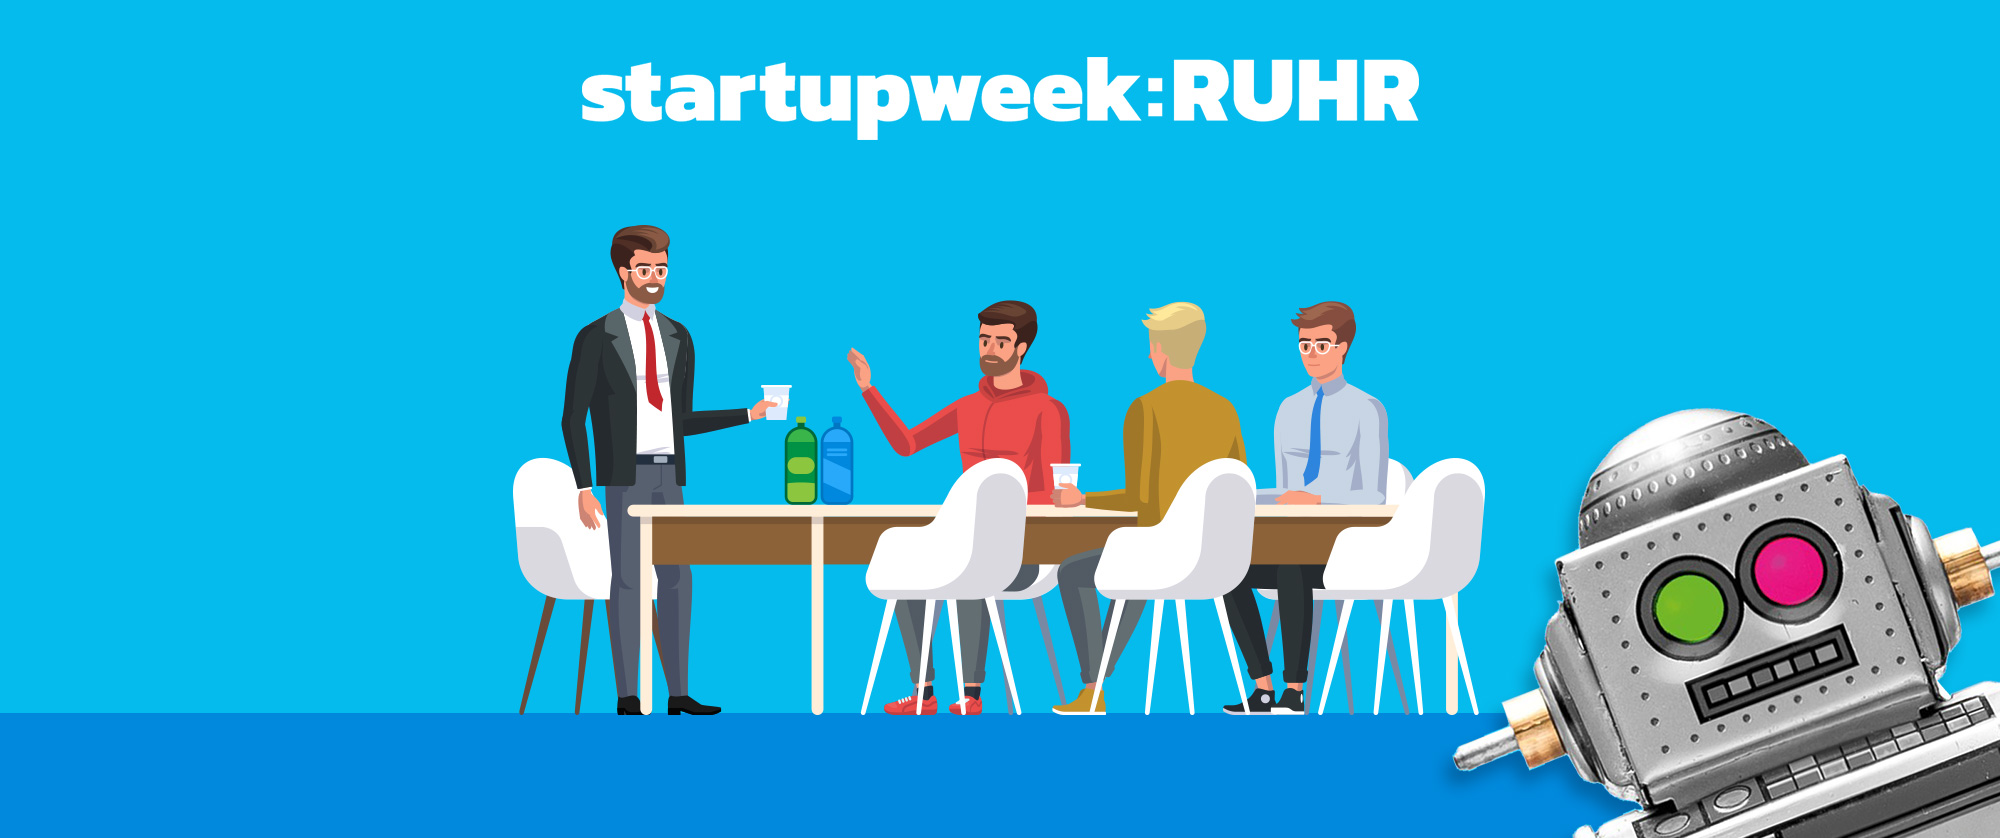 Camp Essen - Startupweek 2018 Kommunikation